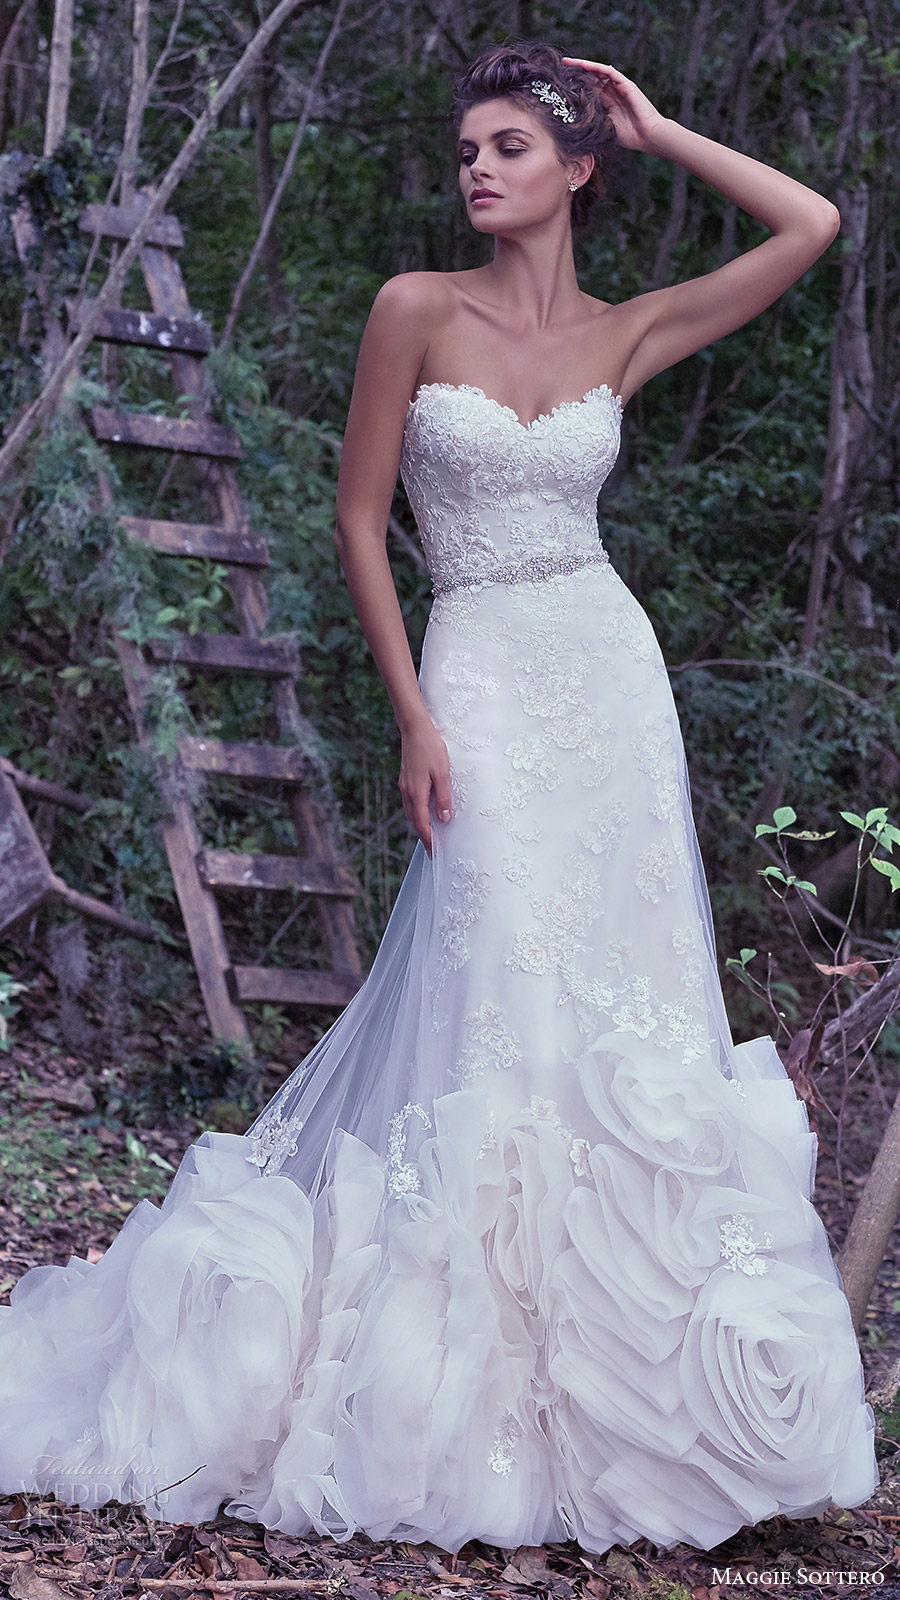 maggie sottero bridal fall 2016 strapless sweetheart lace sheath wedding dress (rosaleigh) fv overskirt